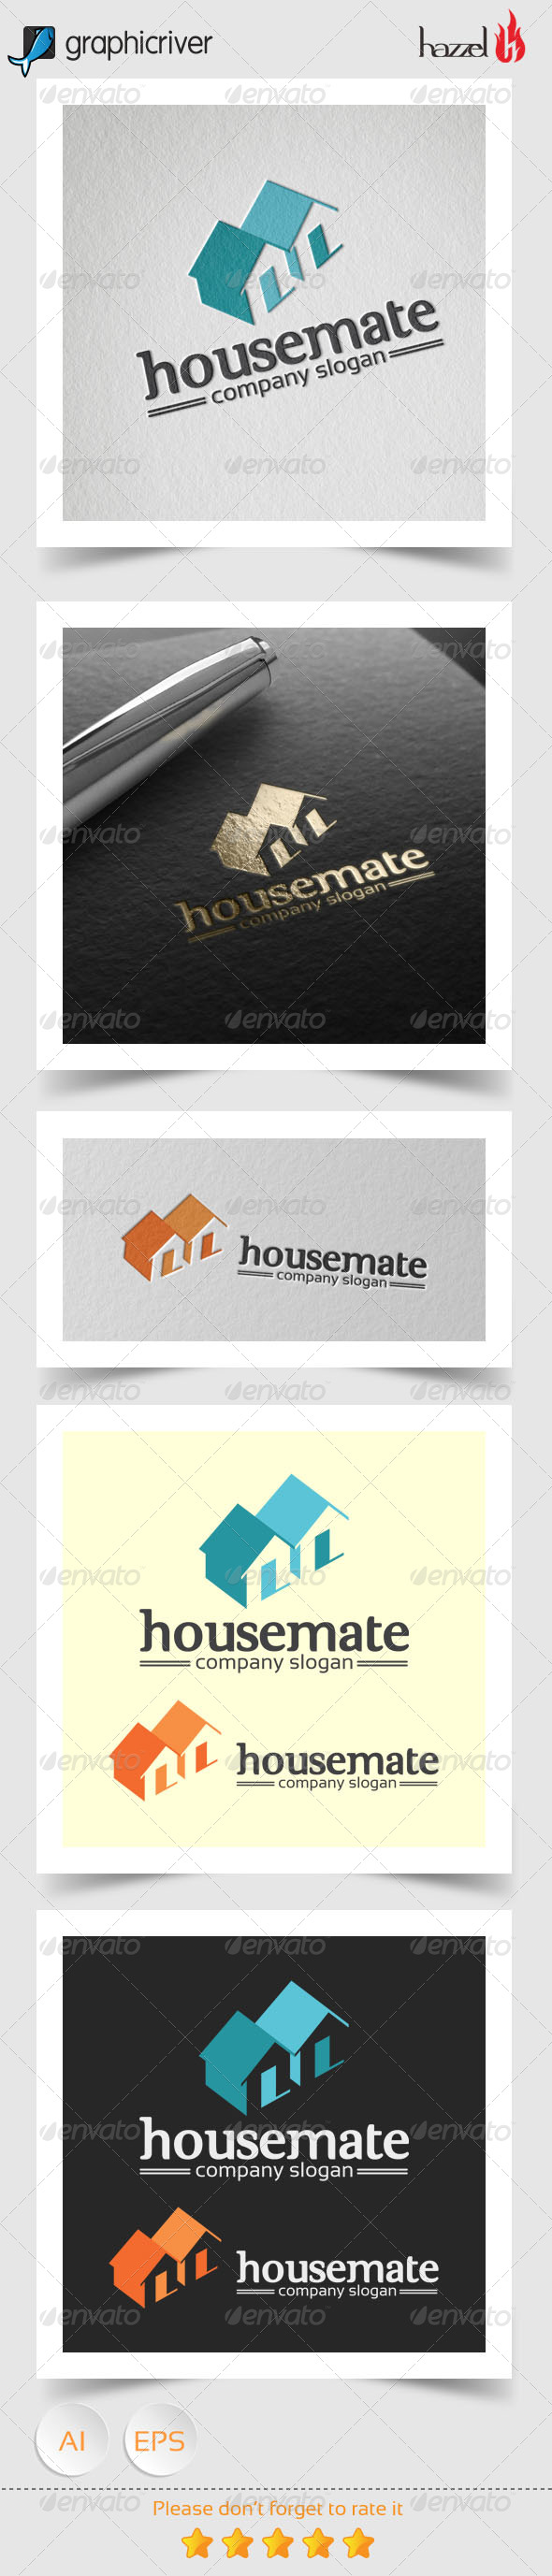 GraphicRiver Housemate Logo 8172833